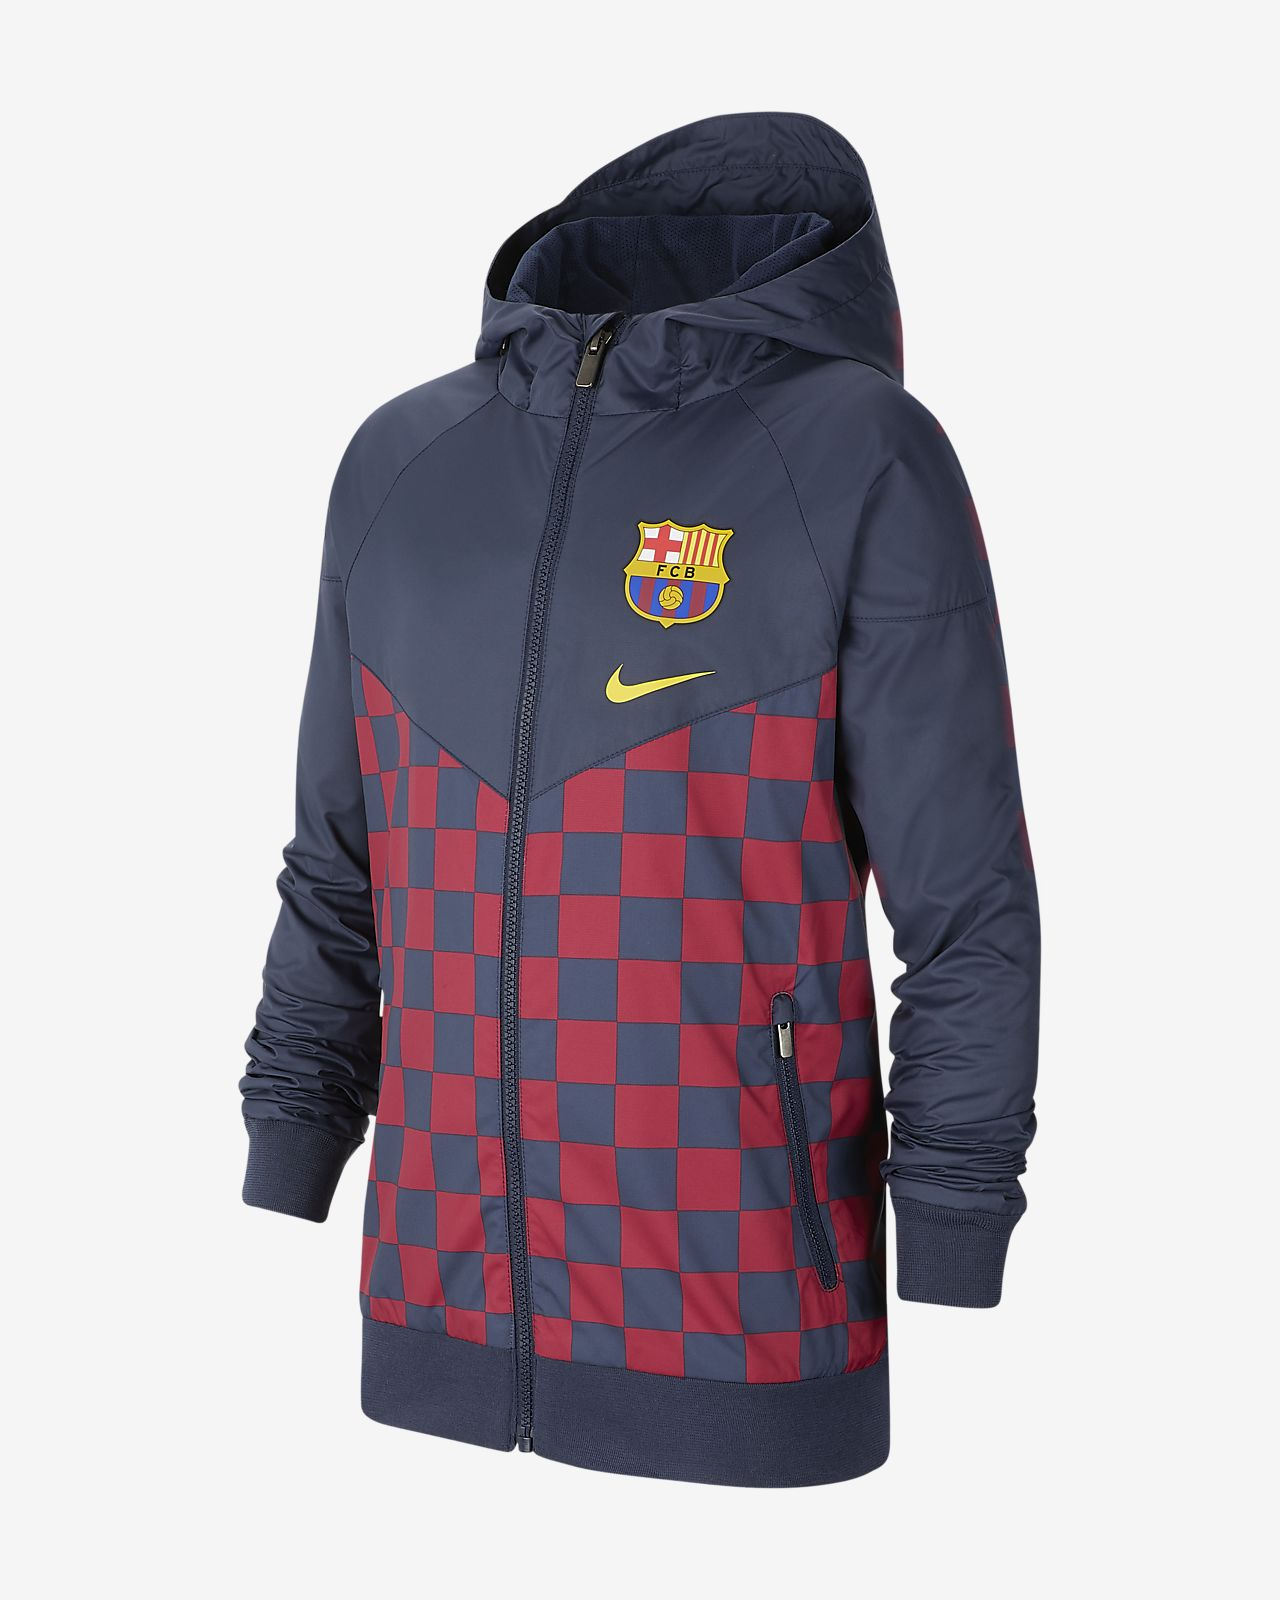 FC Barcelona Windrunner Big Kids' Jacket